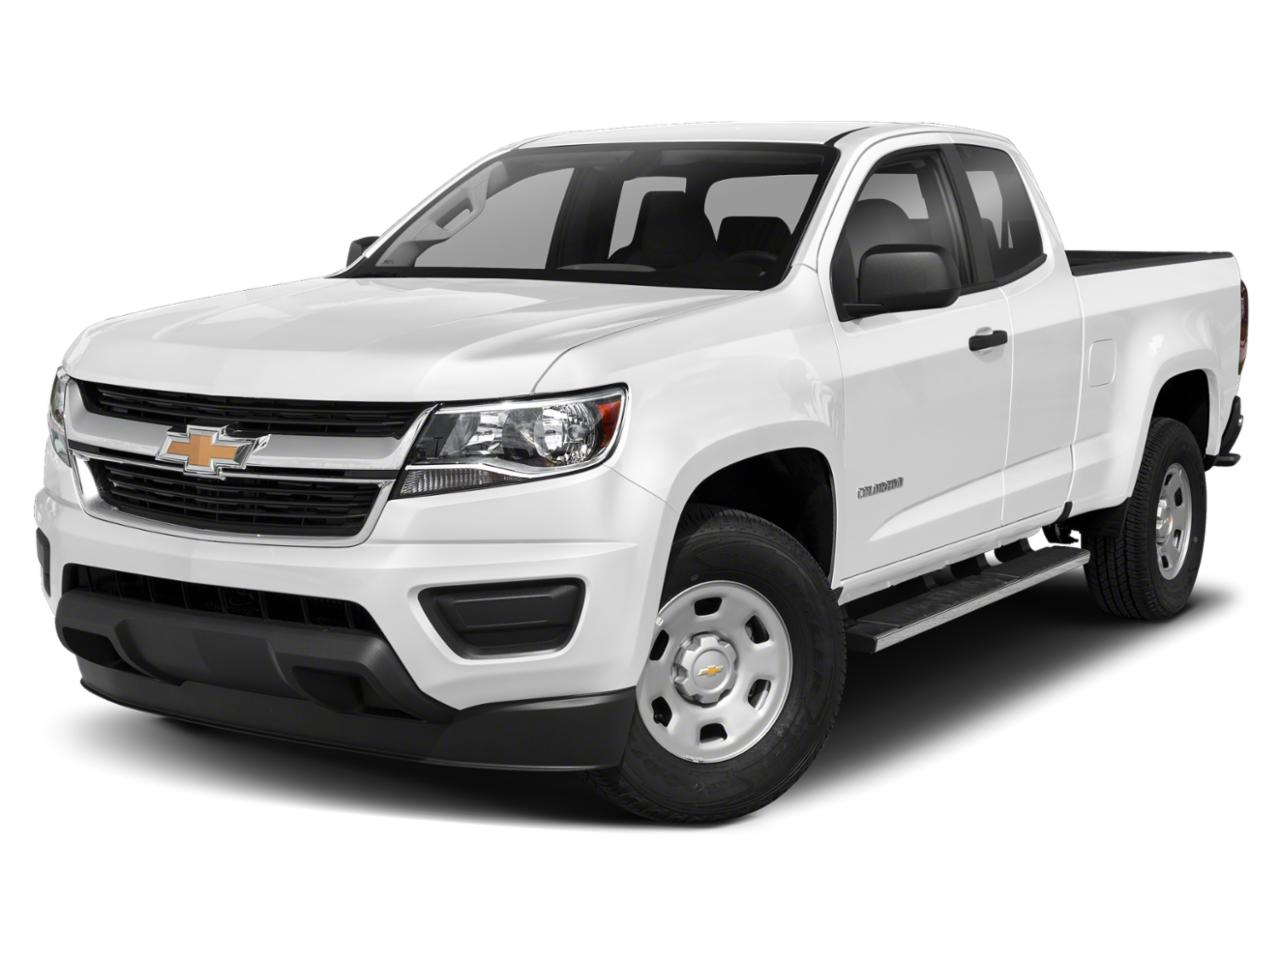 2019 Chevrolet Colorado Vehicle Photo in Emporia, VA 23847